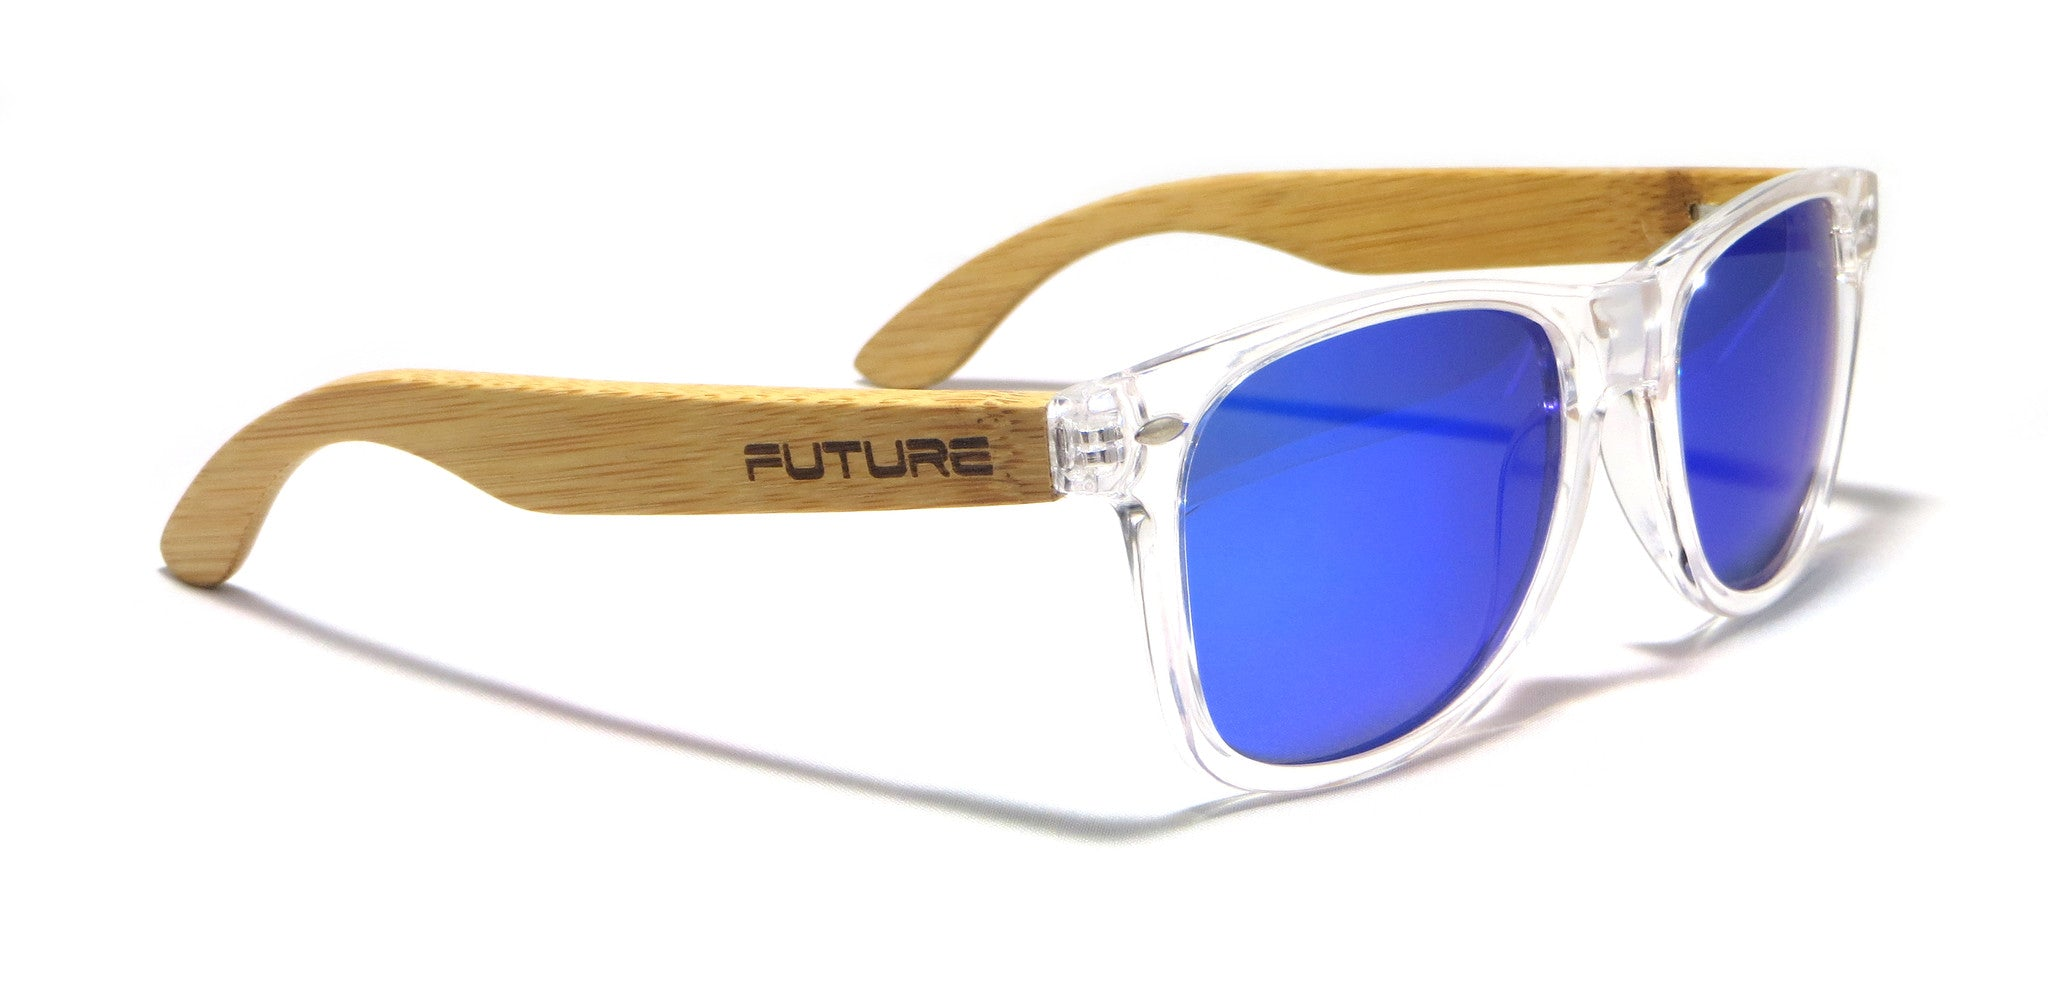 Translucent & Polarized Cobalt Blue - Future Originals - Future-Wear - Carbon Sunglasses